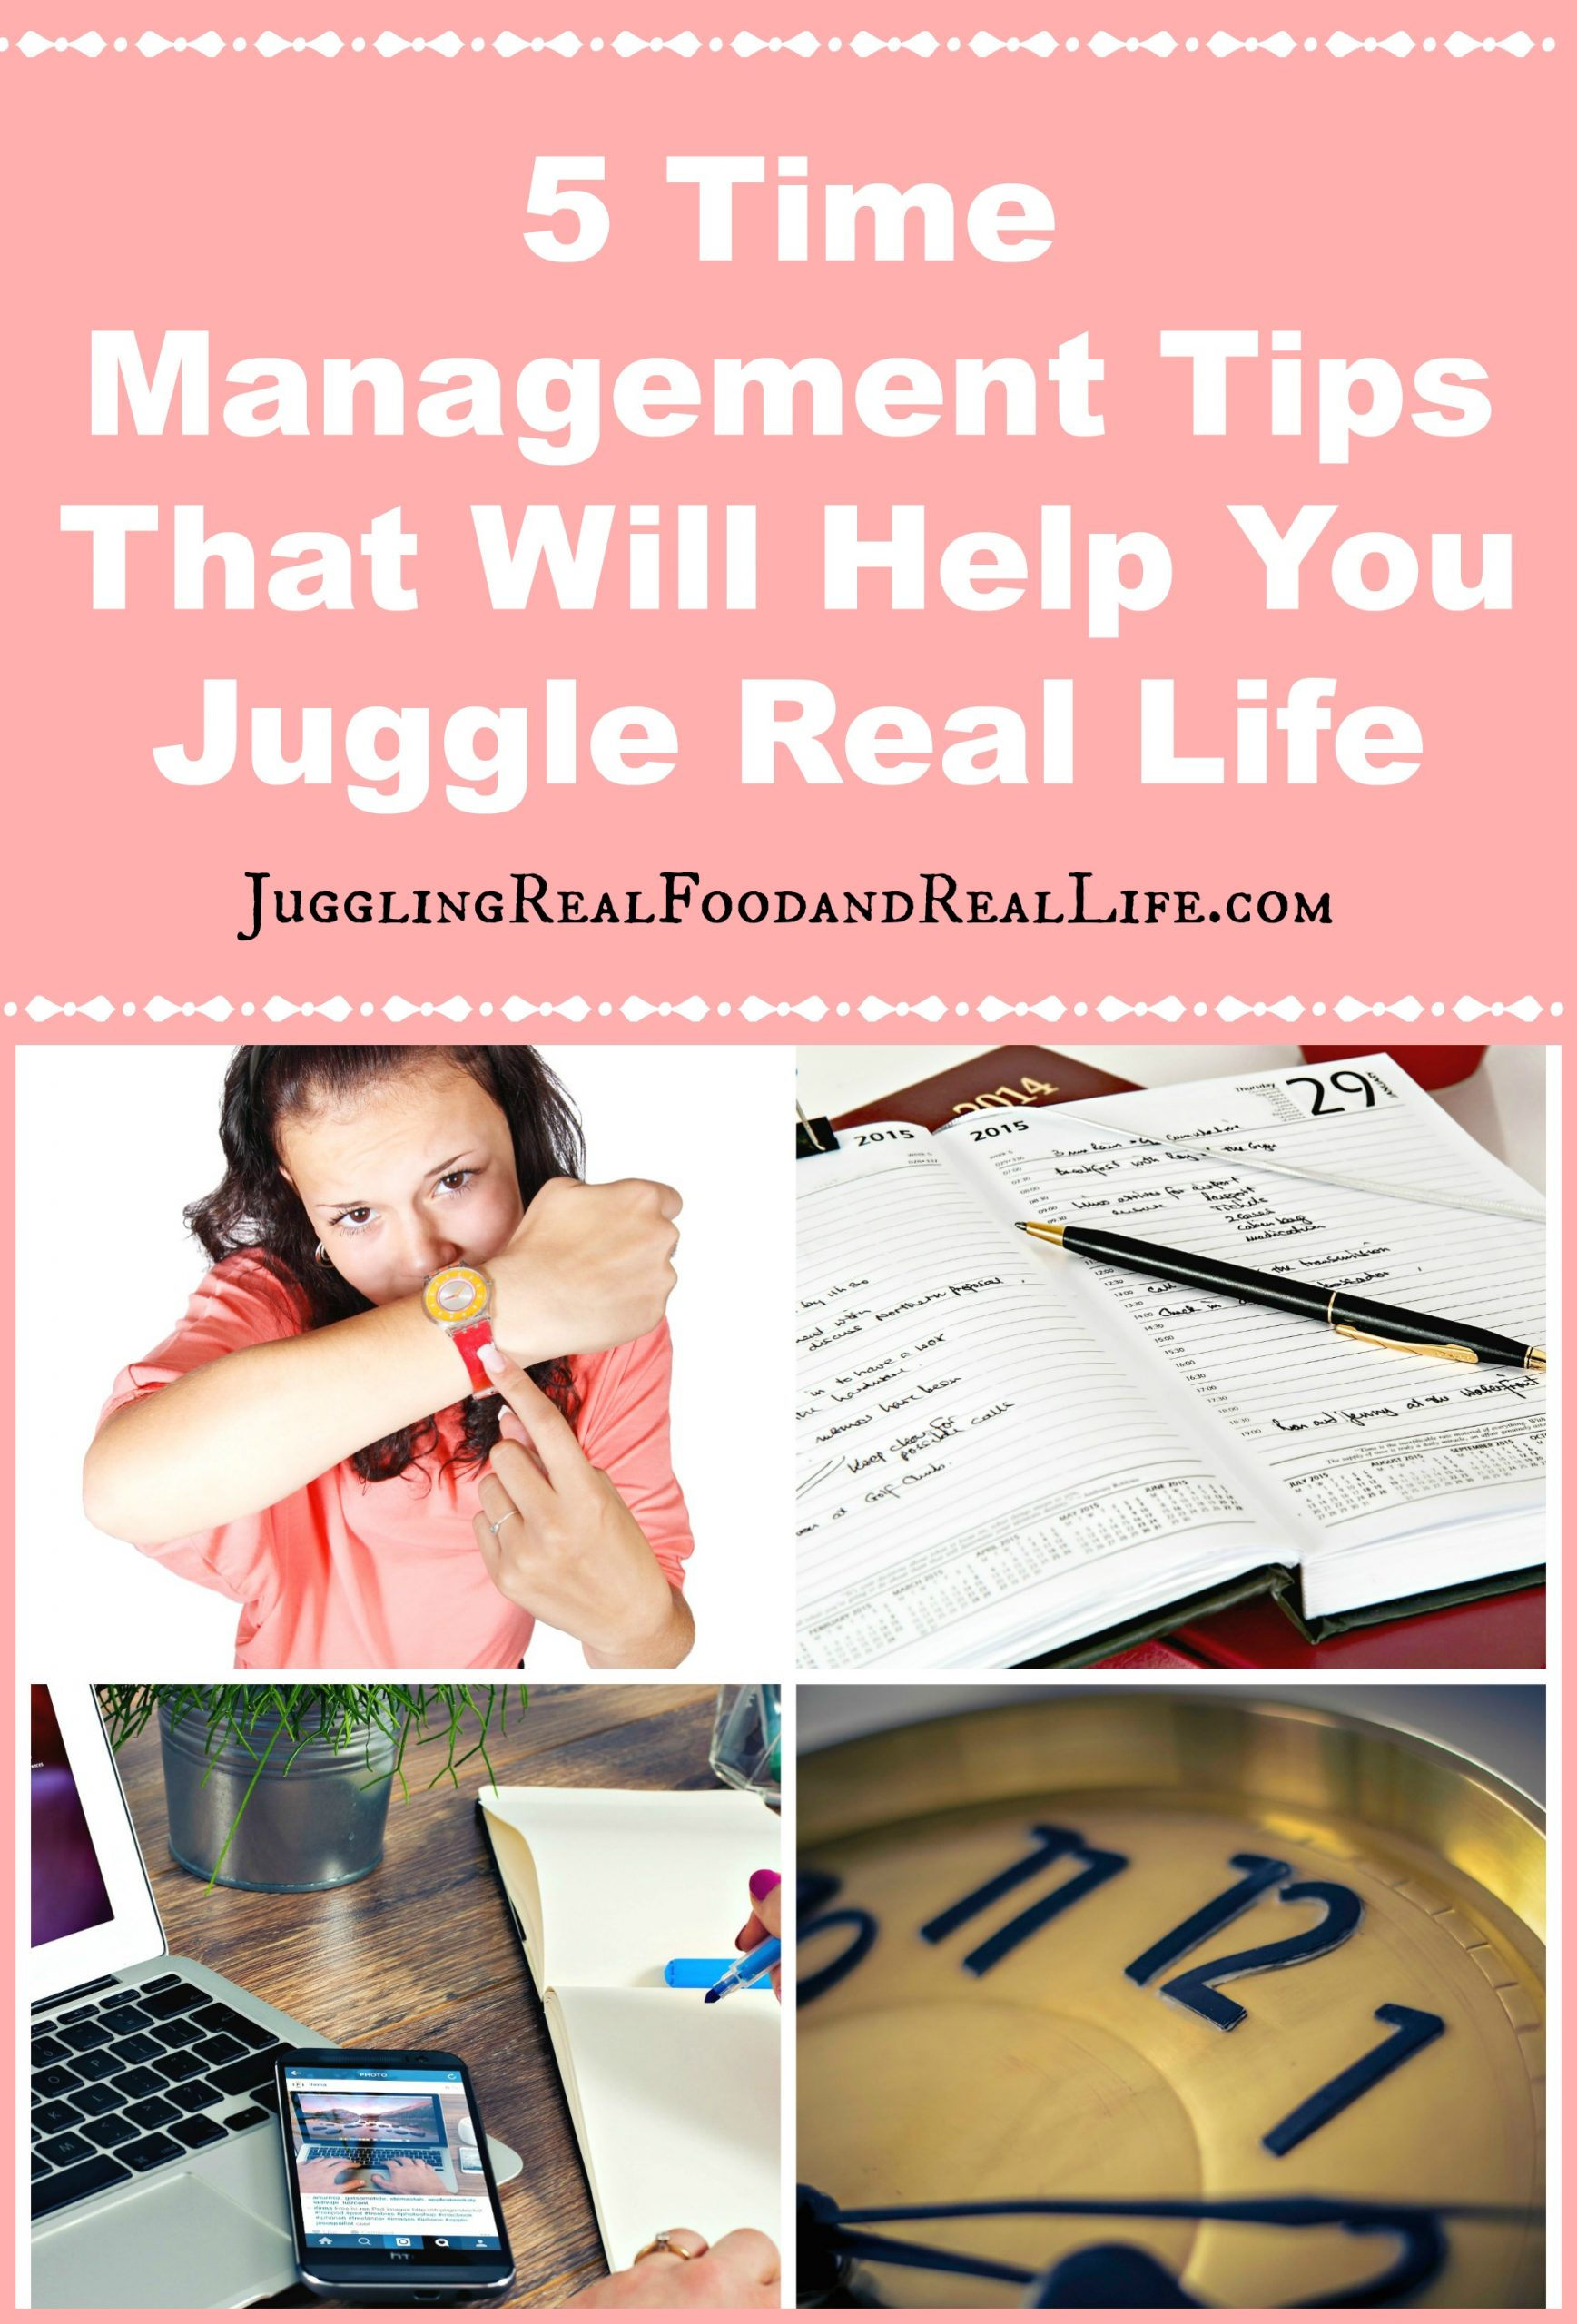 5 Time Management Tips That Will Help You Juggle Real Life